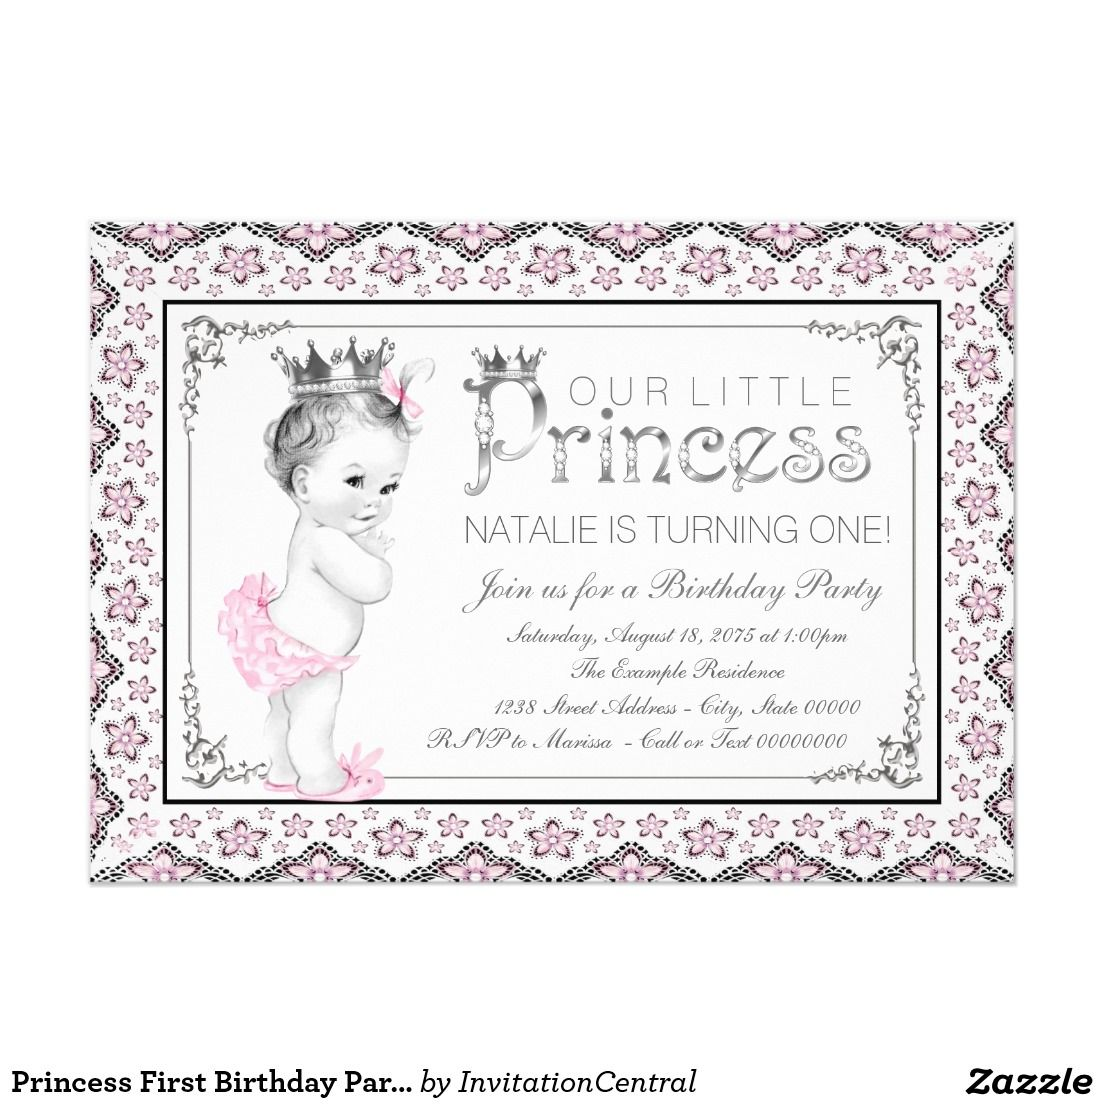 Princess First Birthday Party Card | Kids Birthday Party | Pinterest ...